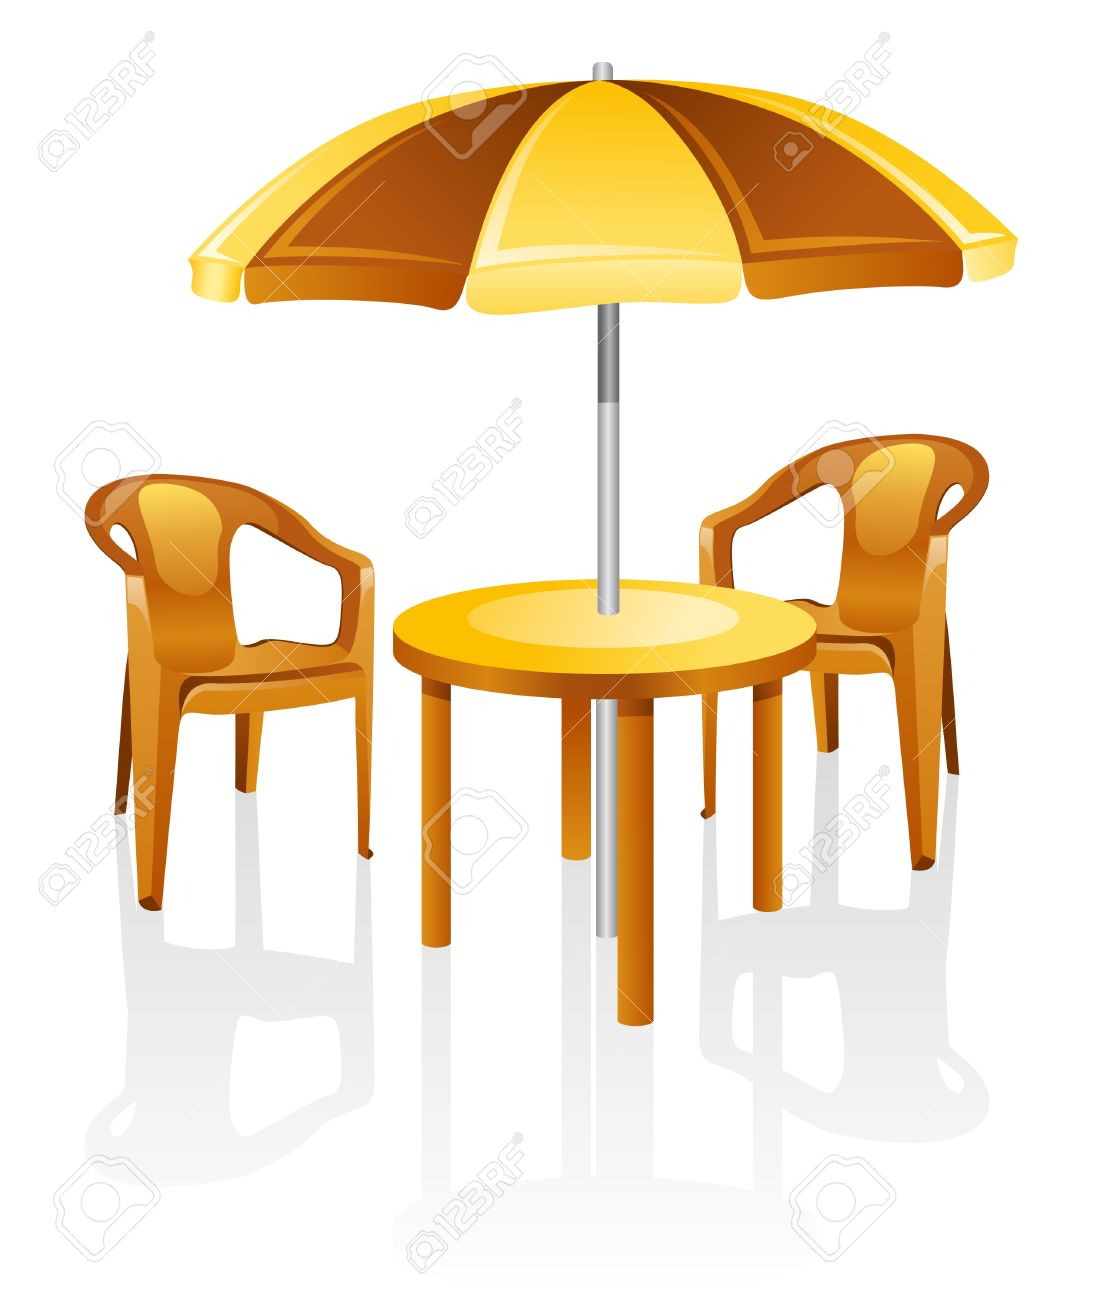 Cafe Garden Furniture Table Chair Parasol Isolated On A